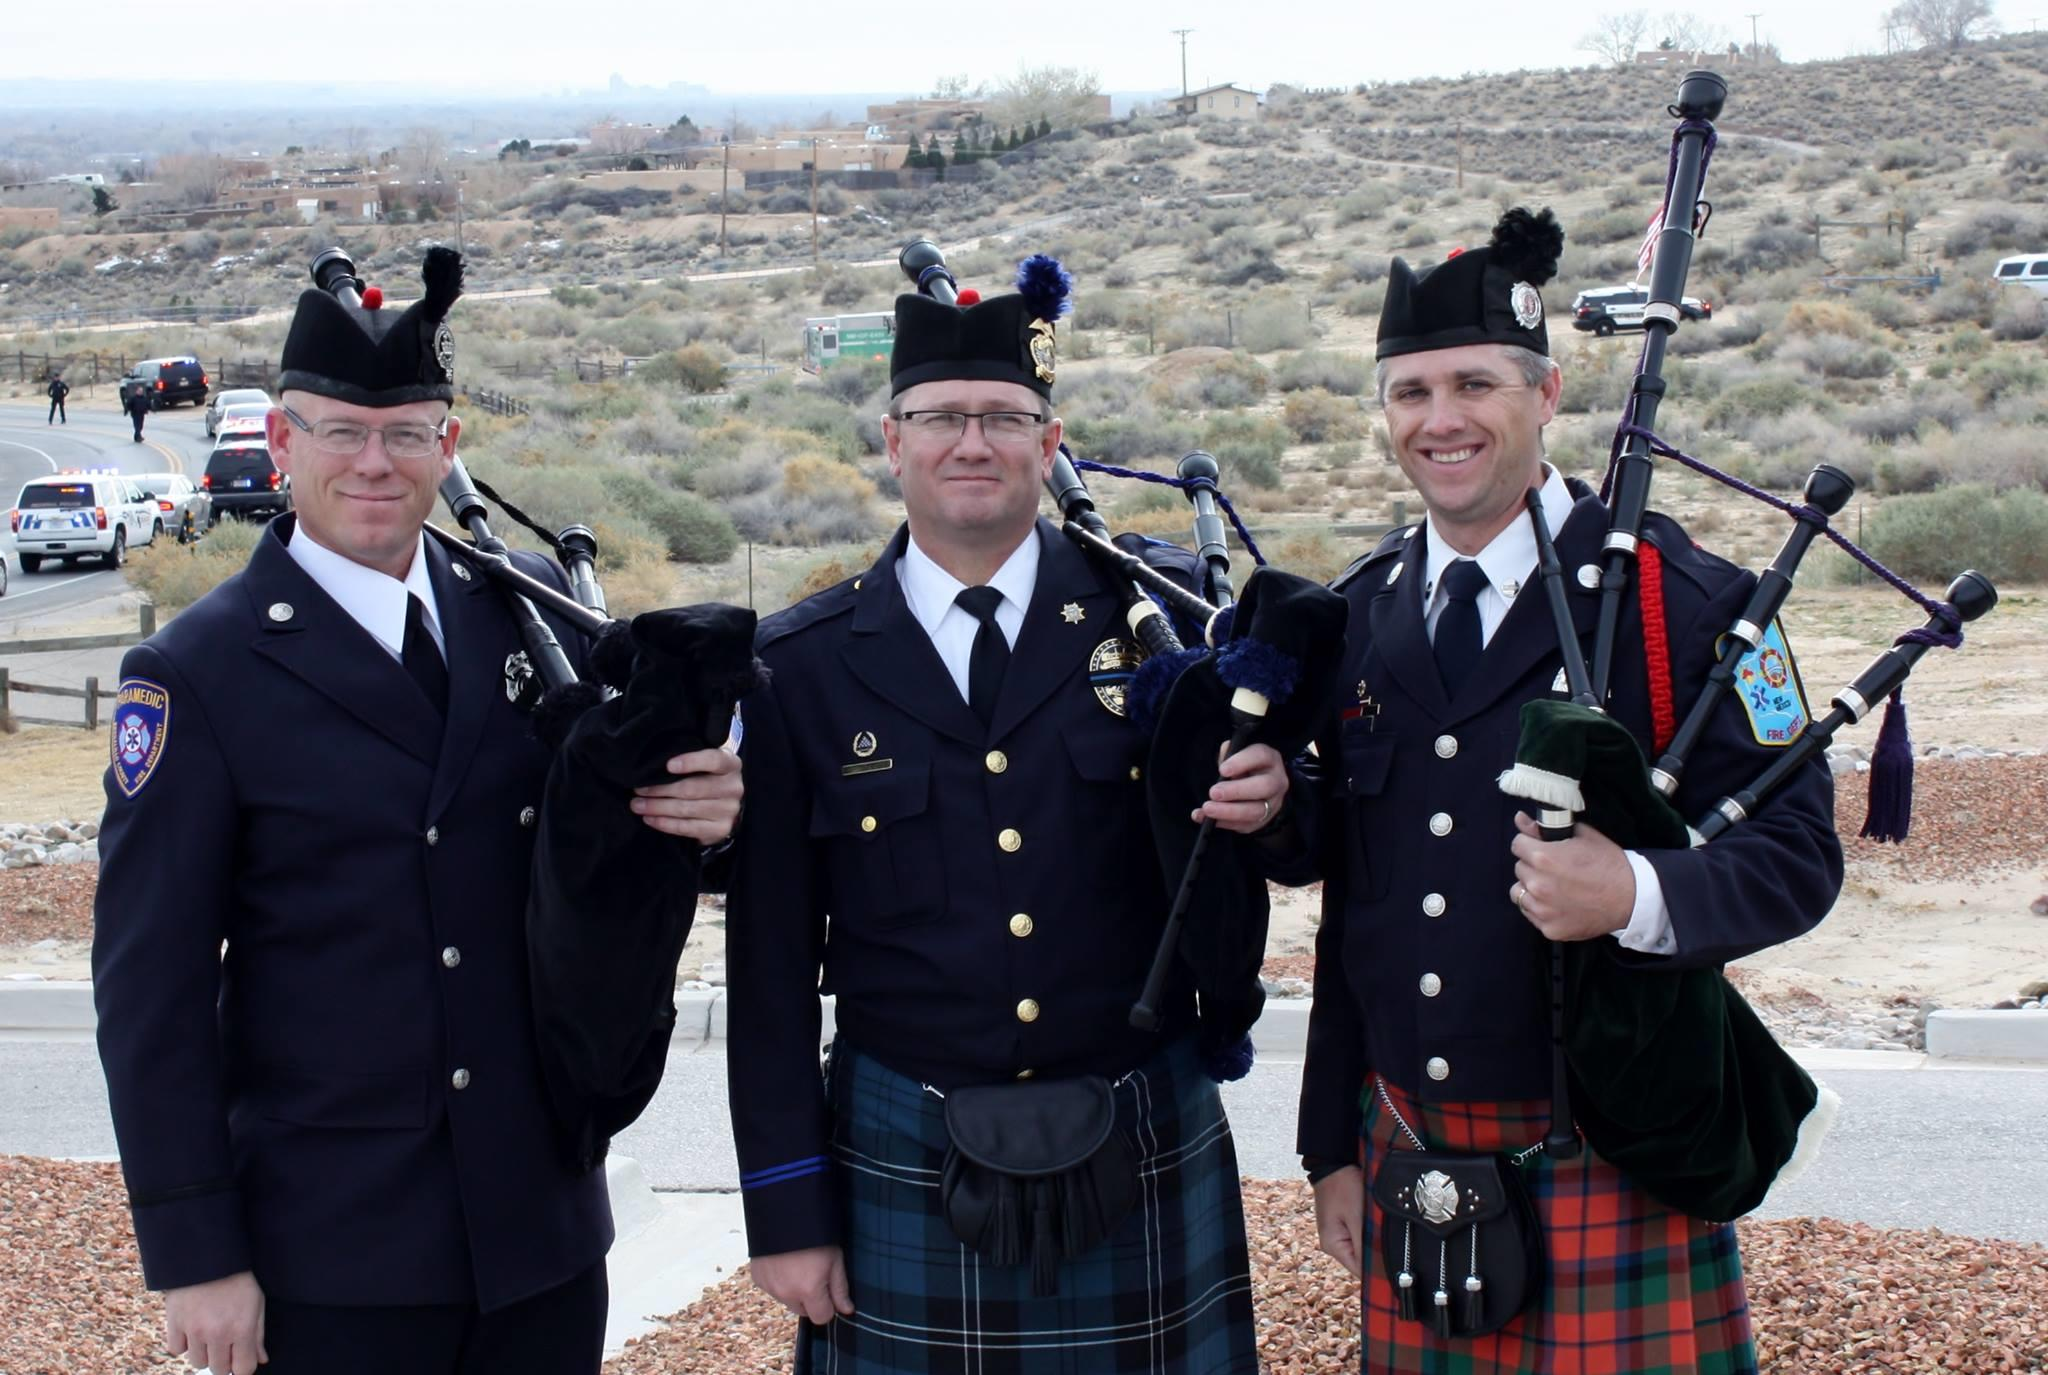 New Mexico Fire and Police Pipes and Drums